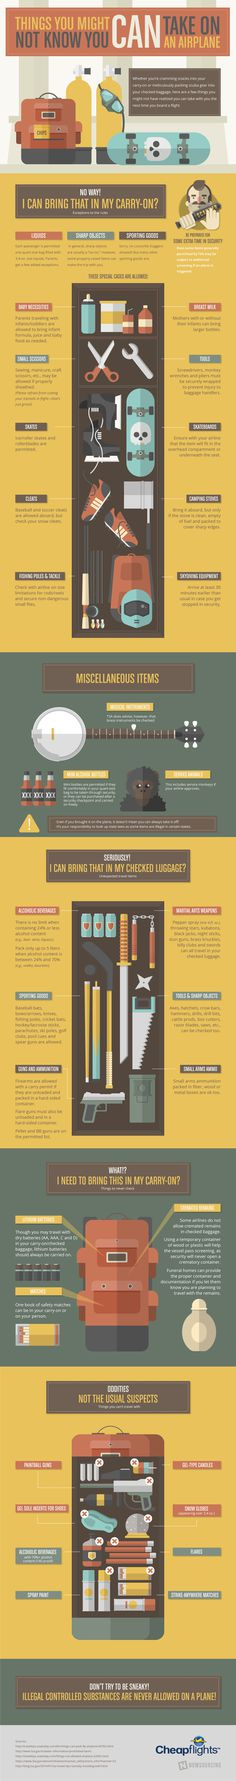 Did you know you can take #firearms on a #plane? If they are in your checked bags, that is! Learn more from this infographic!